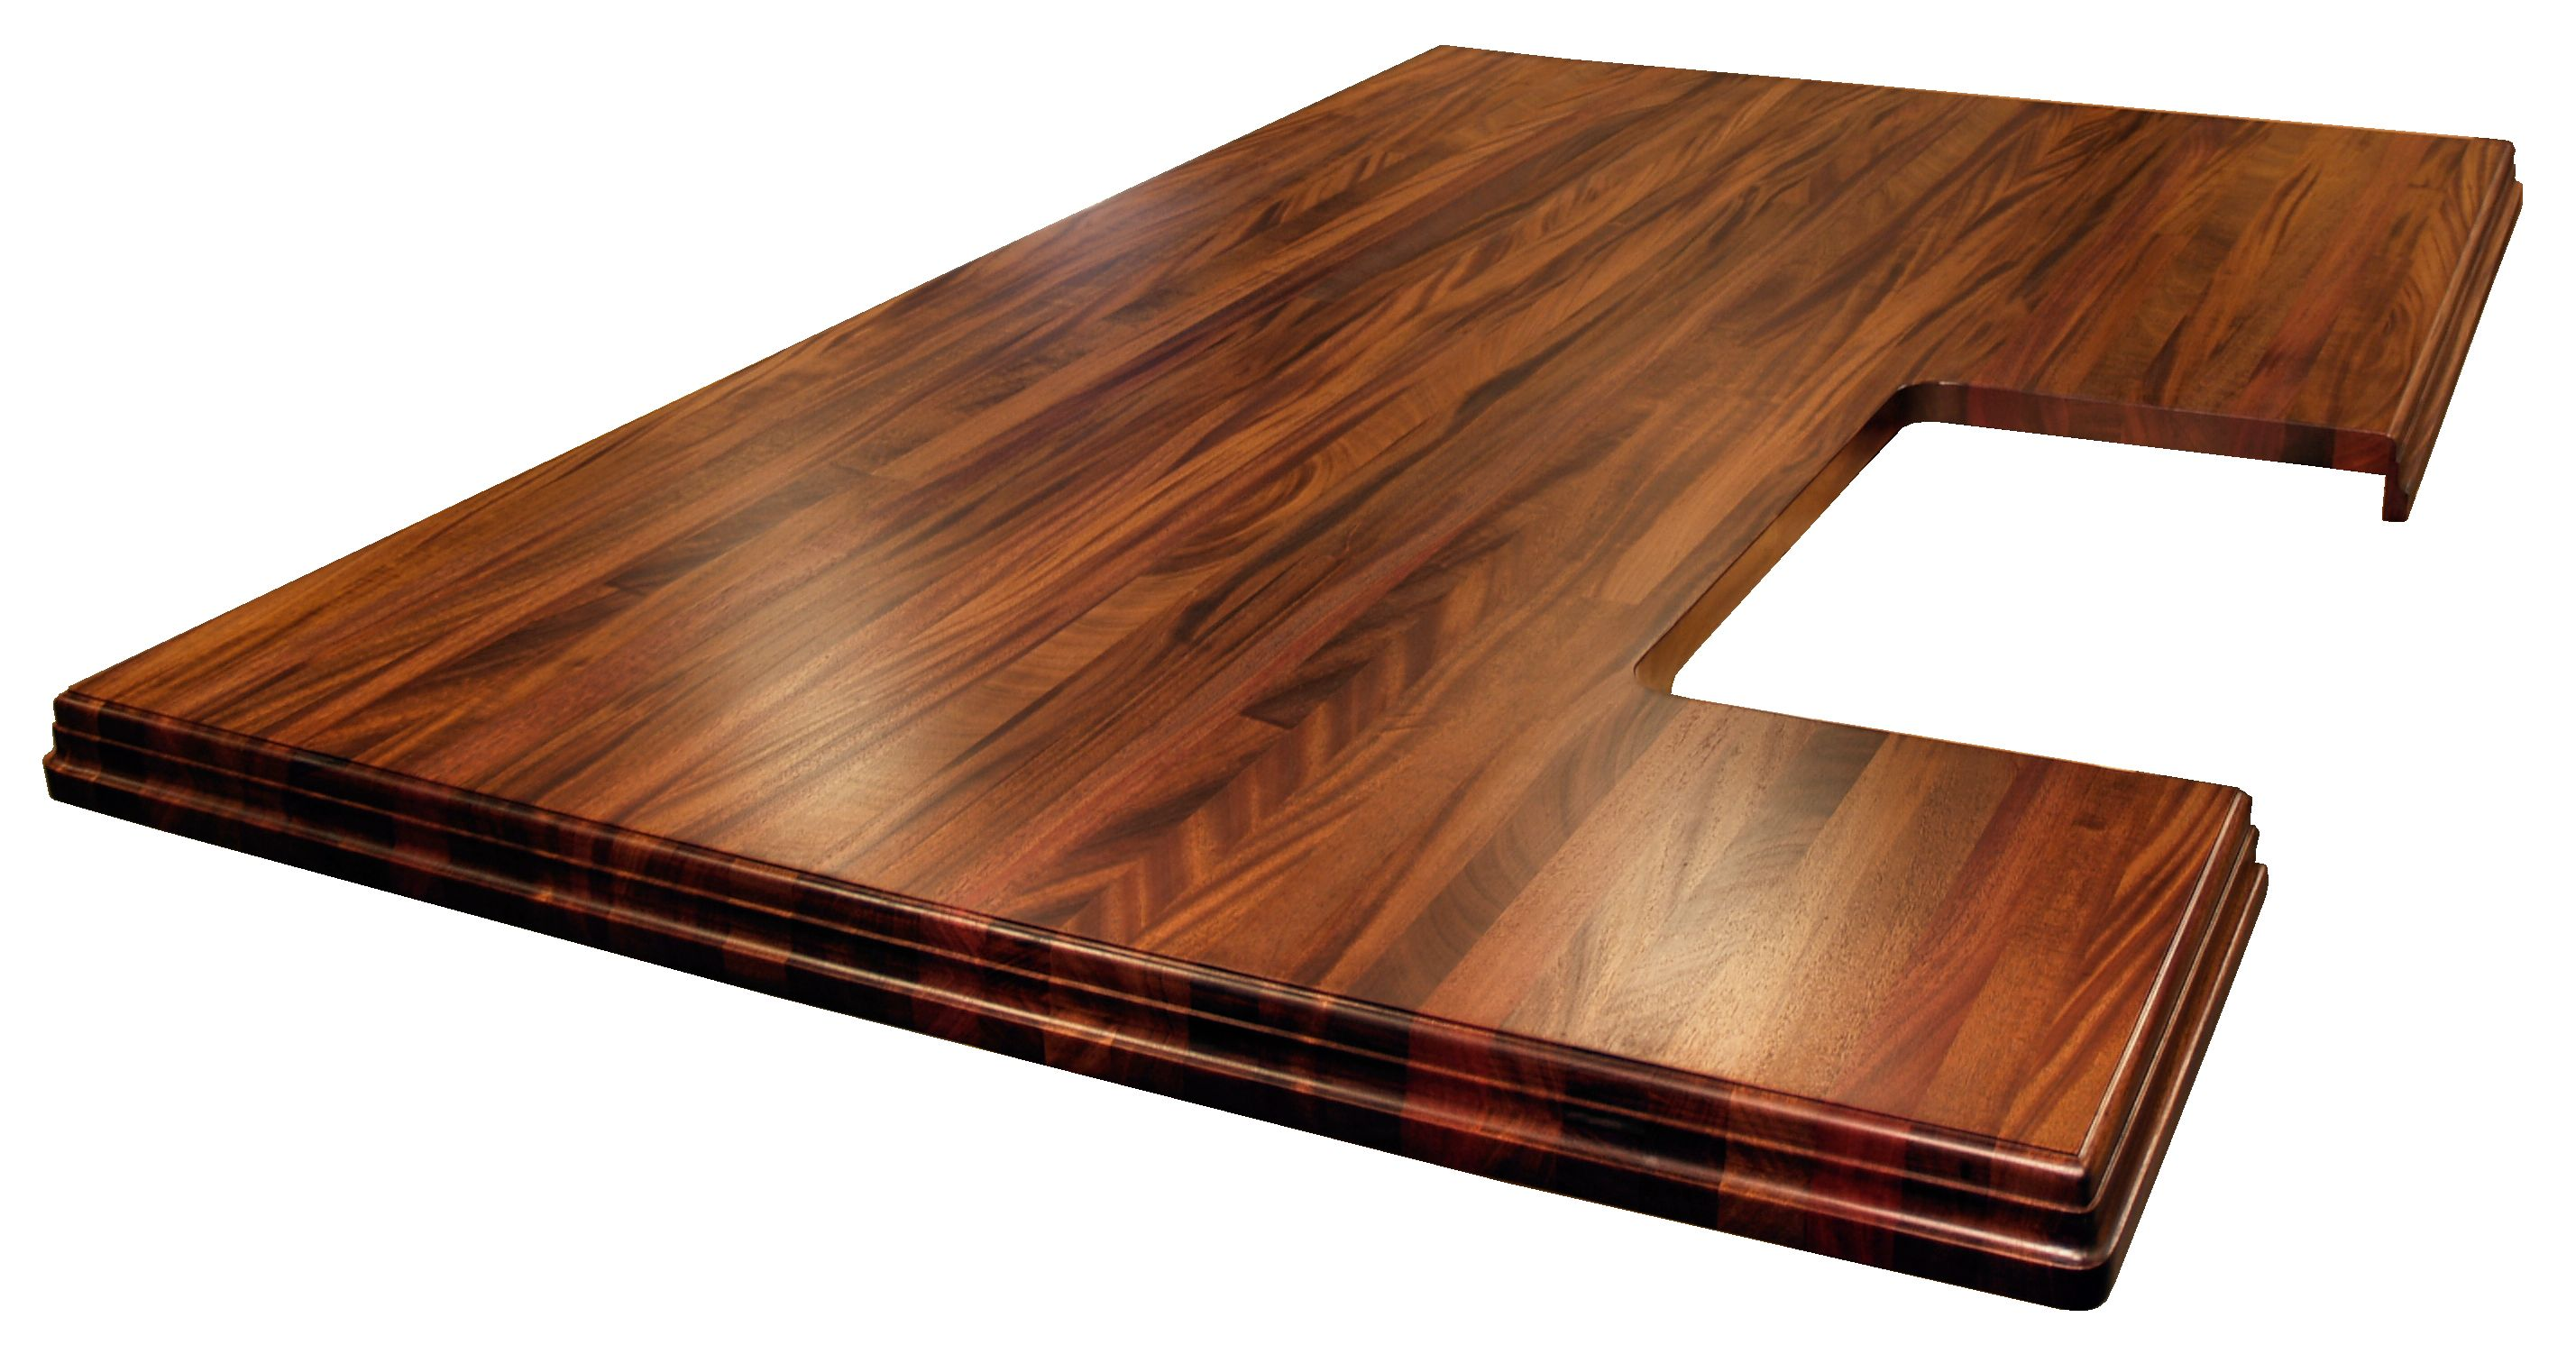 finishes wooden kitchen countertops Afr Mahogany with Walnut Stain African Mahogany Island top with Walnut Stain Edge Grain construction with book matched drop